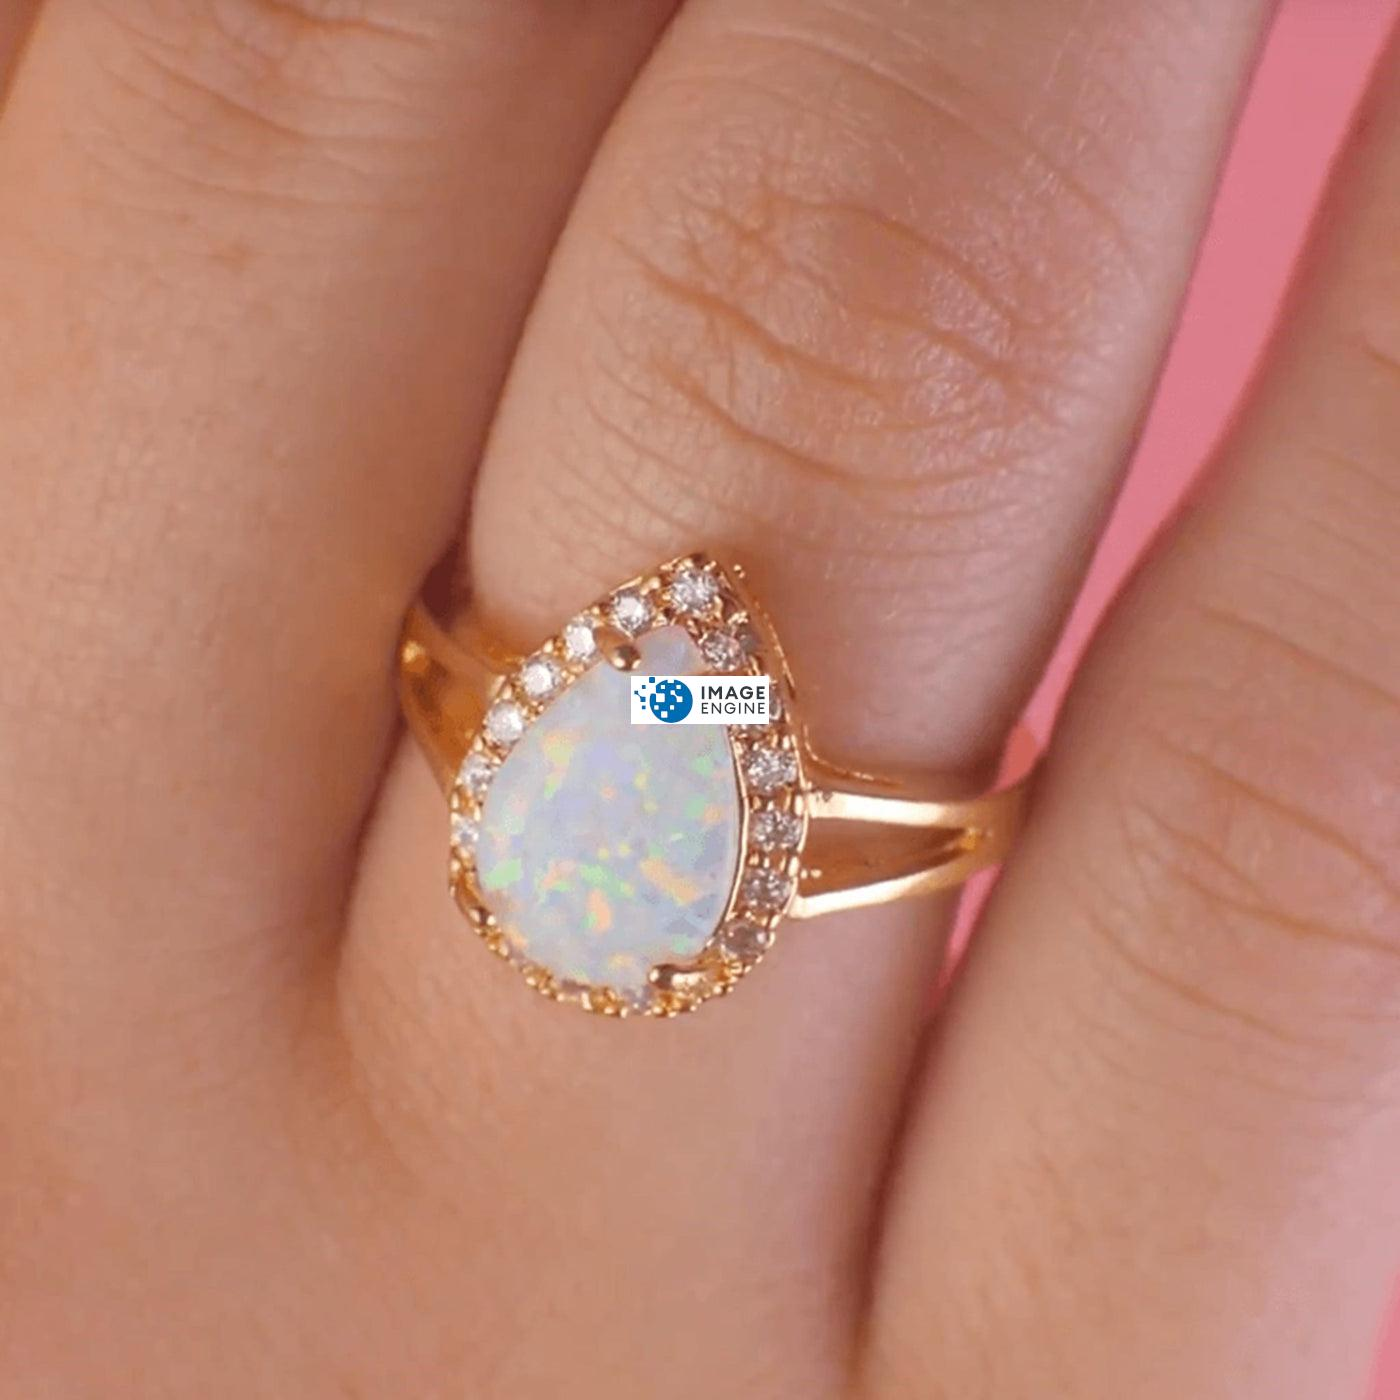 White Fire Champagne Opal Ring - Wearing on Ring Finger - 18K Yellow Gold Vermeil